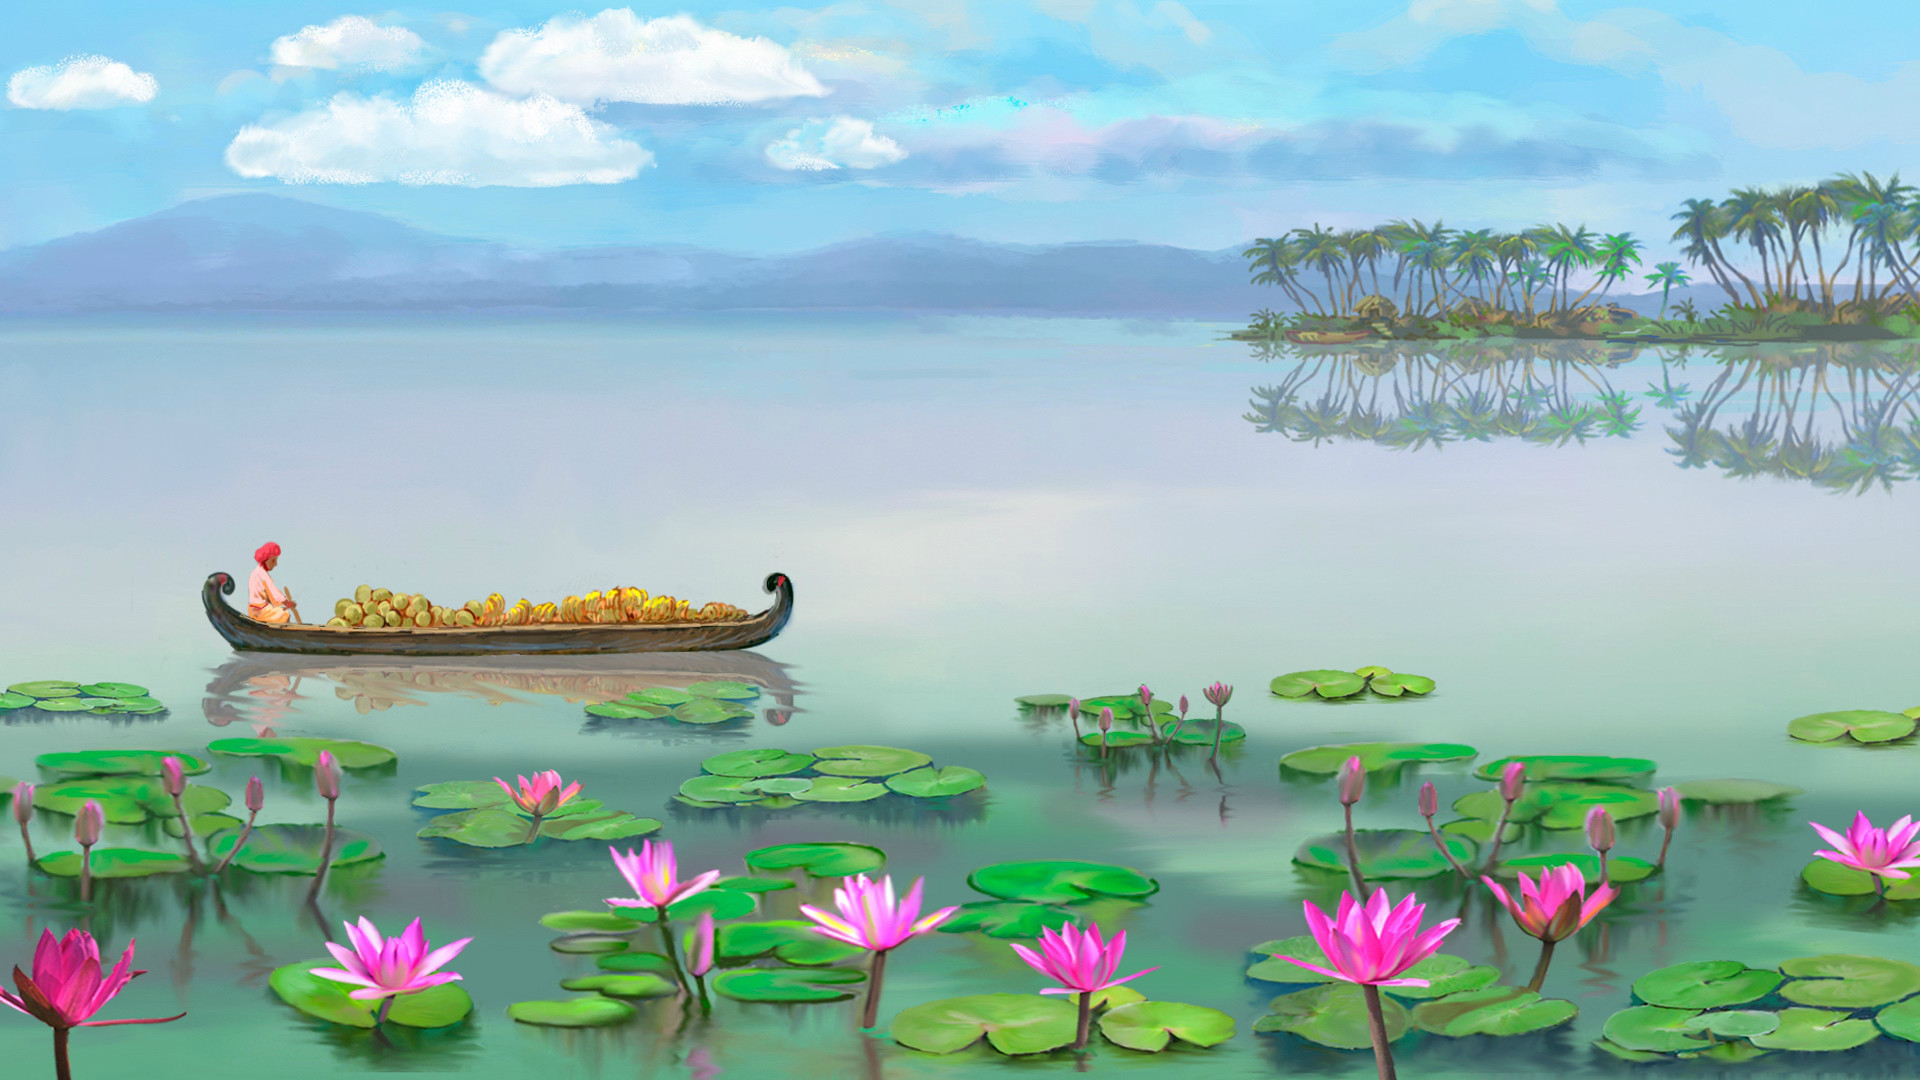 1920x1080 free animated wallpaper windows 8 | Take a relaxing tropical trip on the  river full of